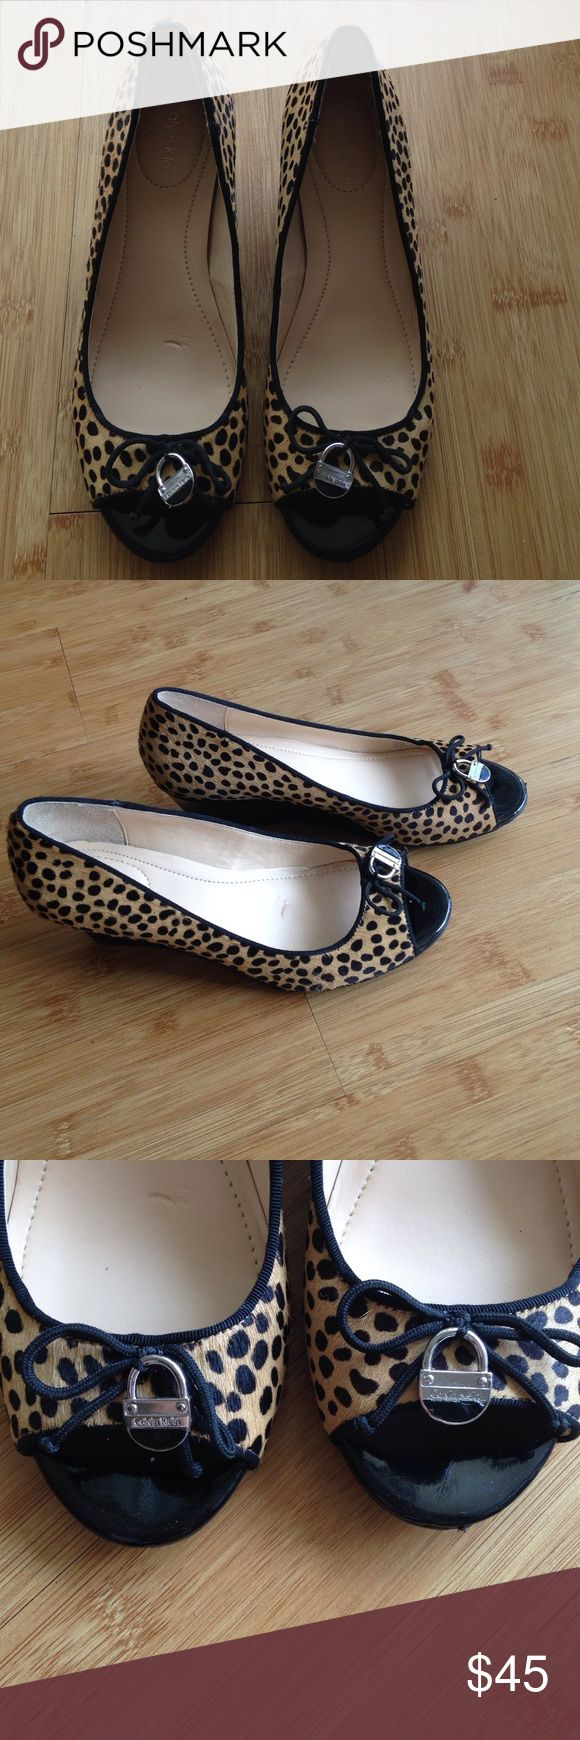 CALVIN KLEIN Wedges Wore it once. Too big for me. I wear a size 5/5.5 and this is a 6.5. Very cute leopard print. Perfect for work! Shoes Heels